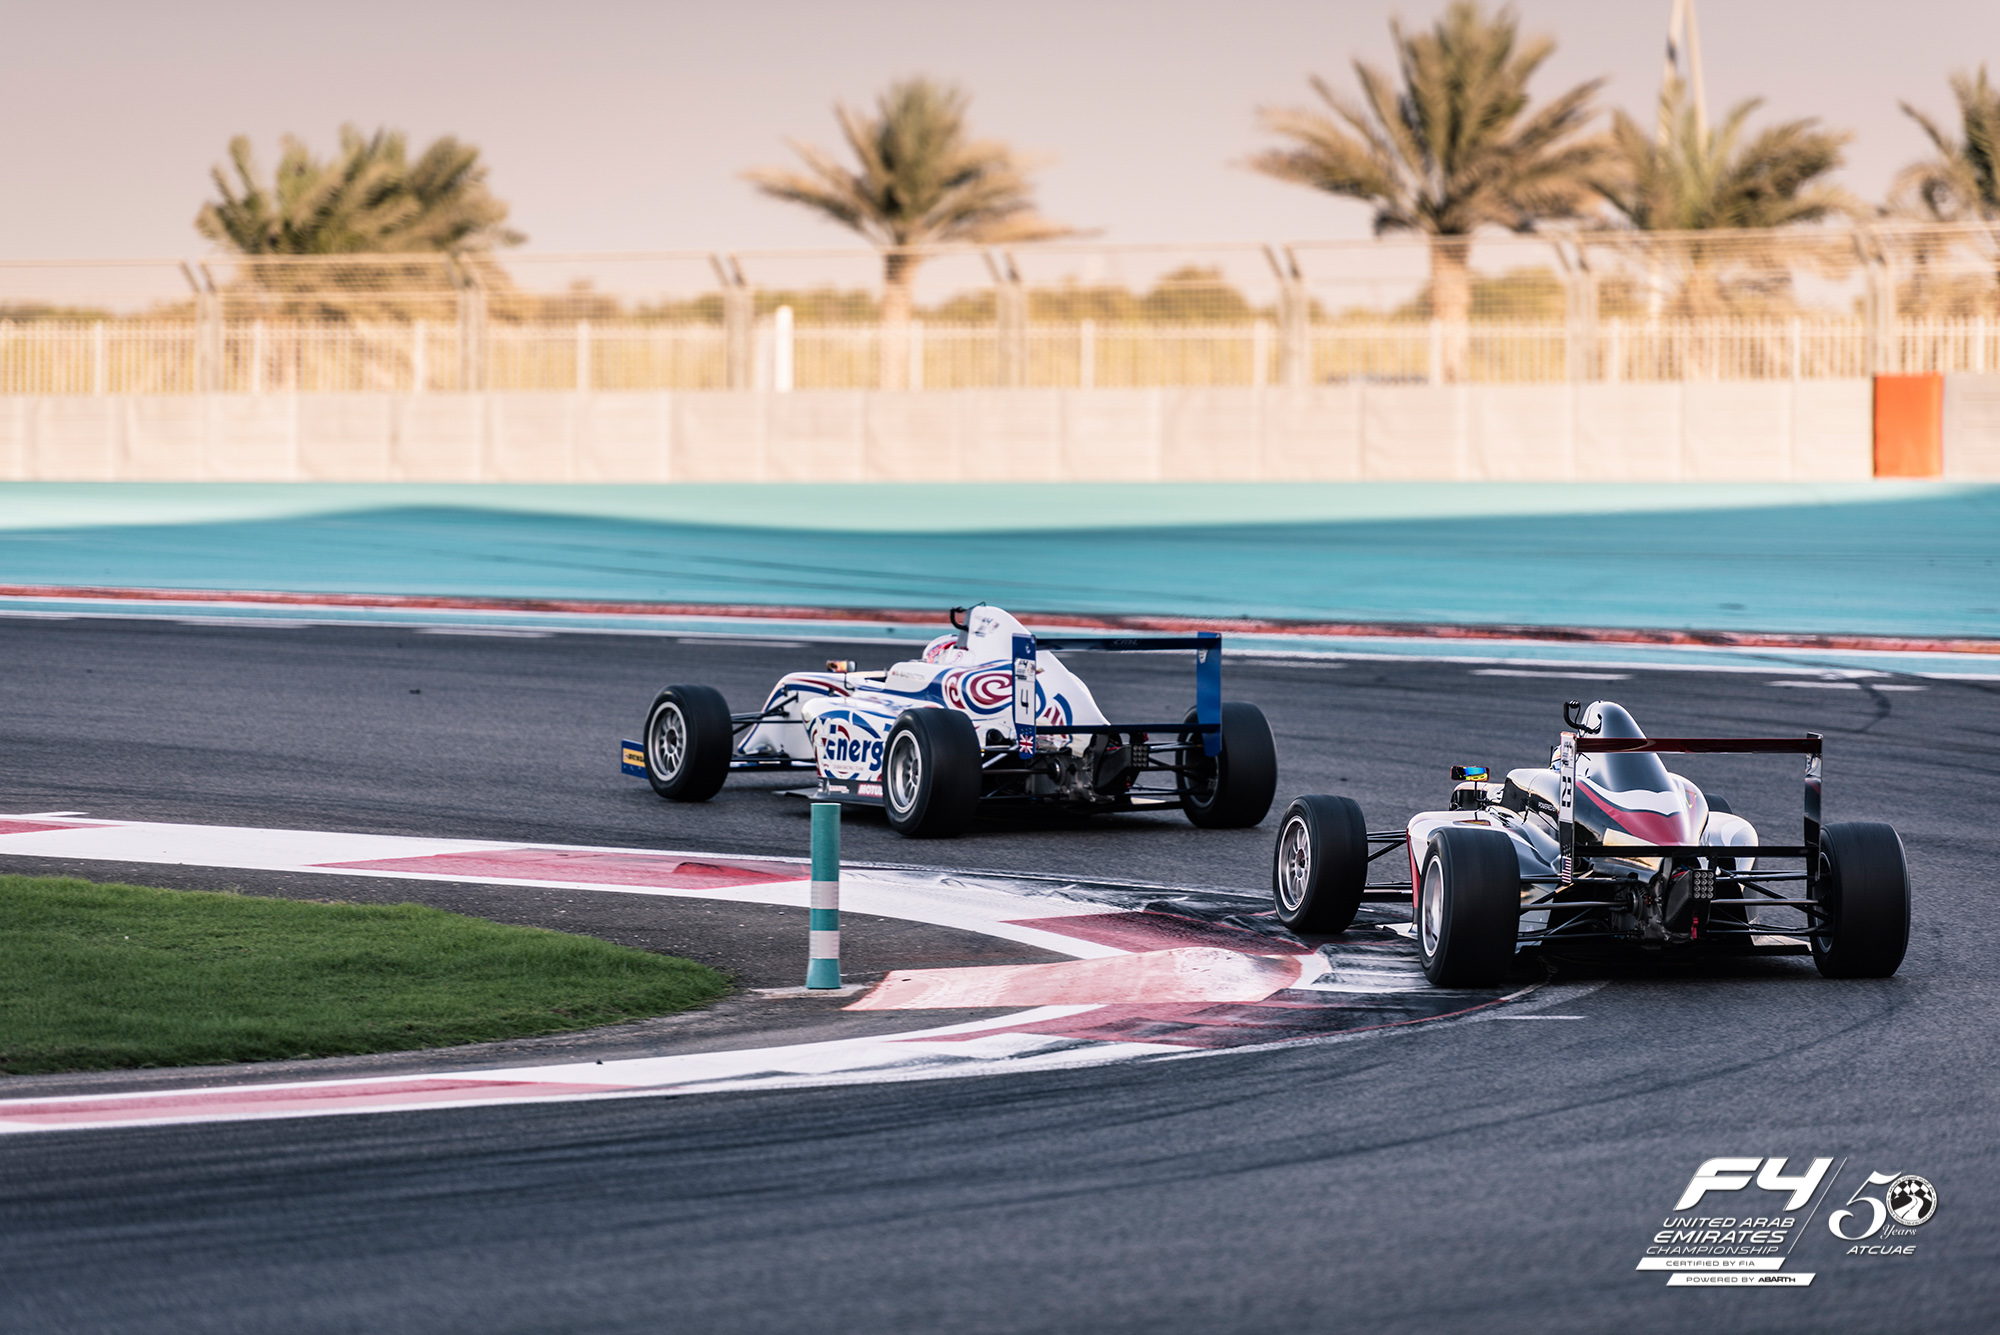 2016 12 18   F4 Second Roud   Abu Dhabi 21 Of 39